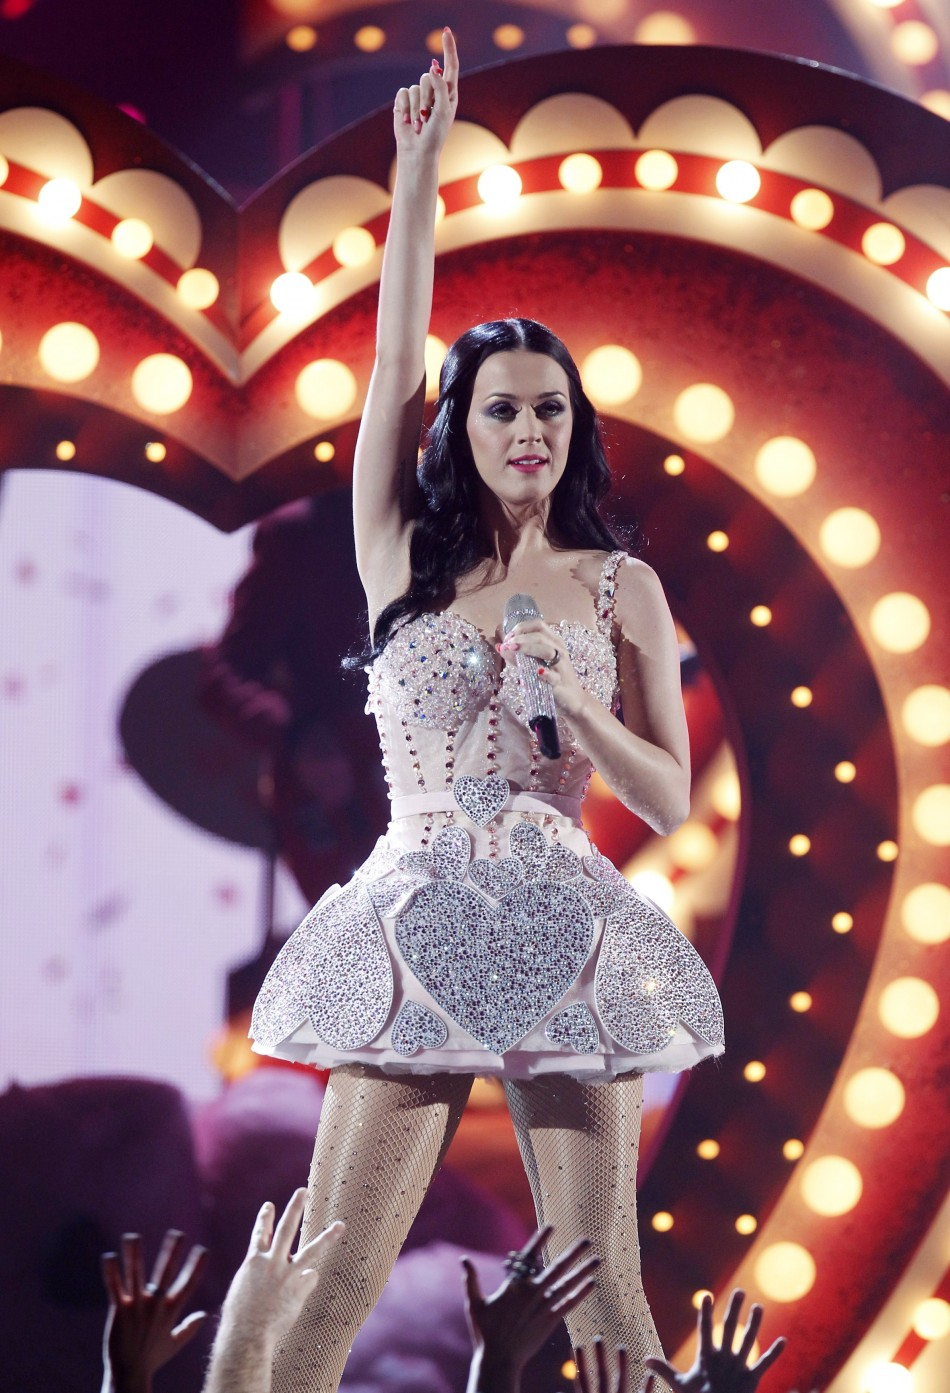 Singer Katy Perry performs quotTeenage Dreamquot at the 53rd annual Grammy Awards